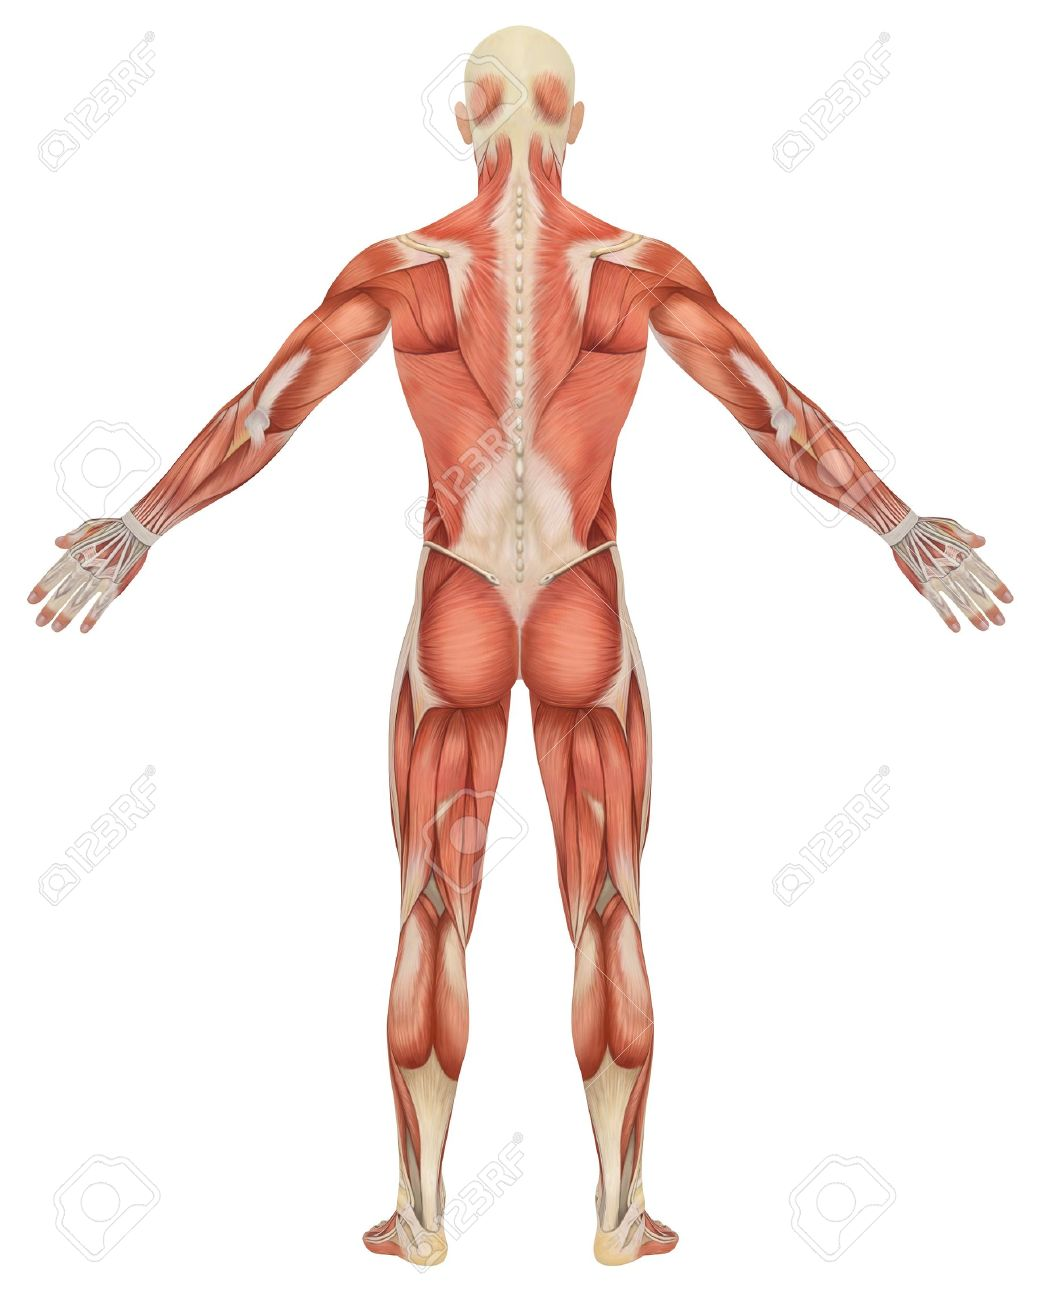 A Illustration Of The Rear View Of The Male Muscular Anatomy ...